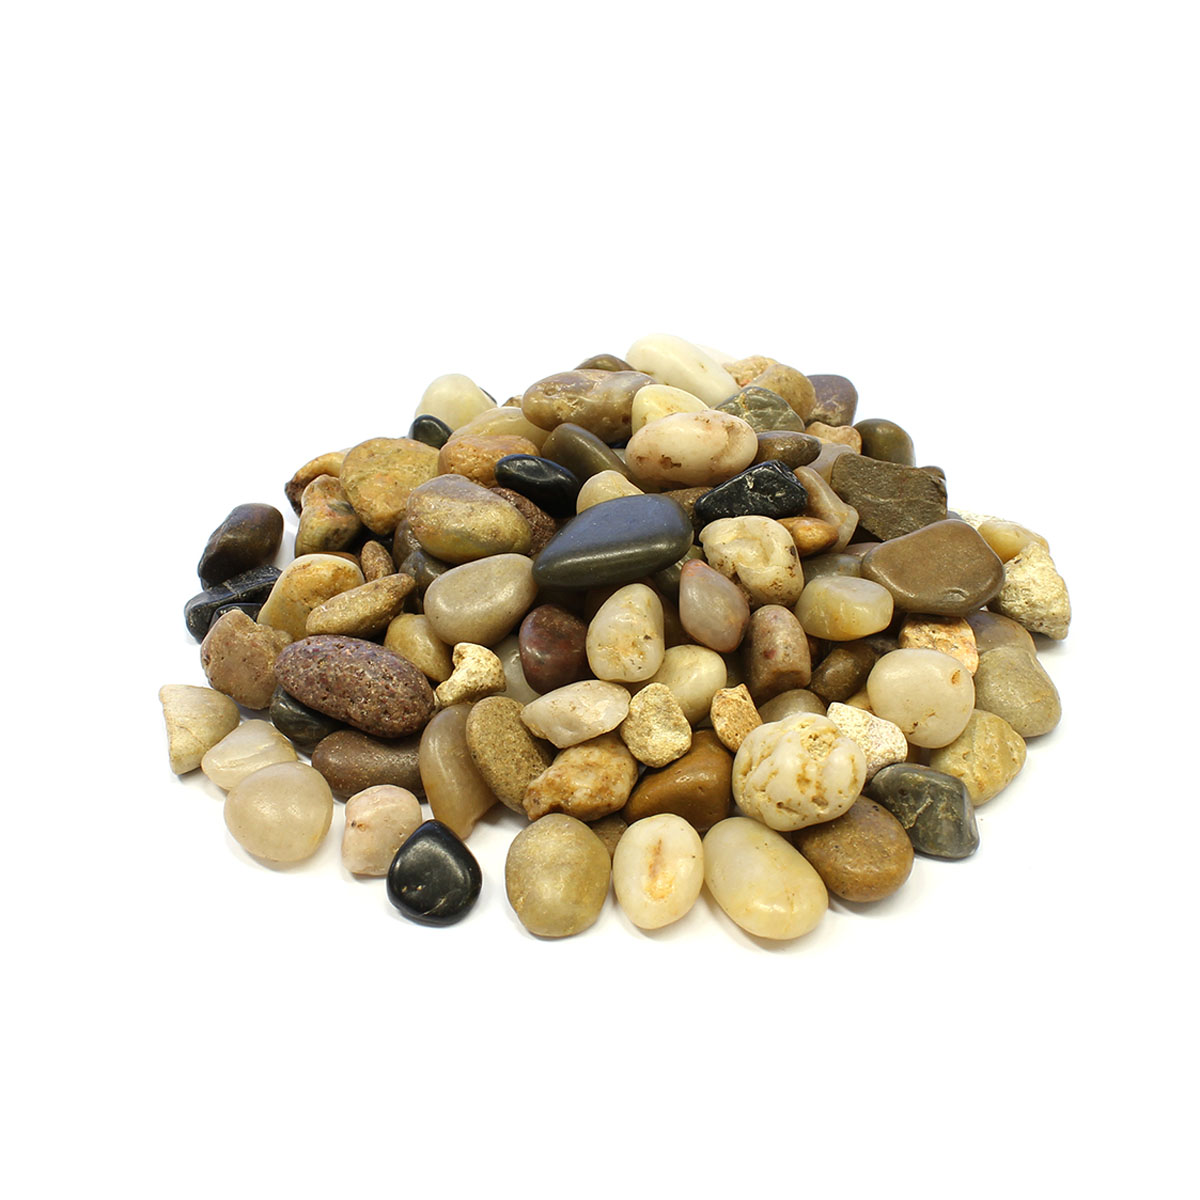 31015 - Landscaping Pebbles - Pebble Mix